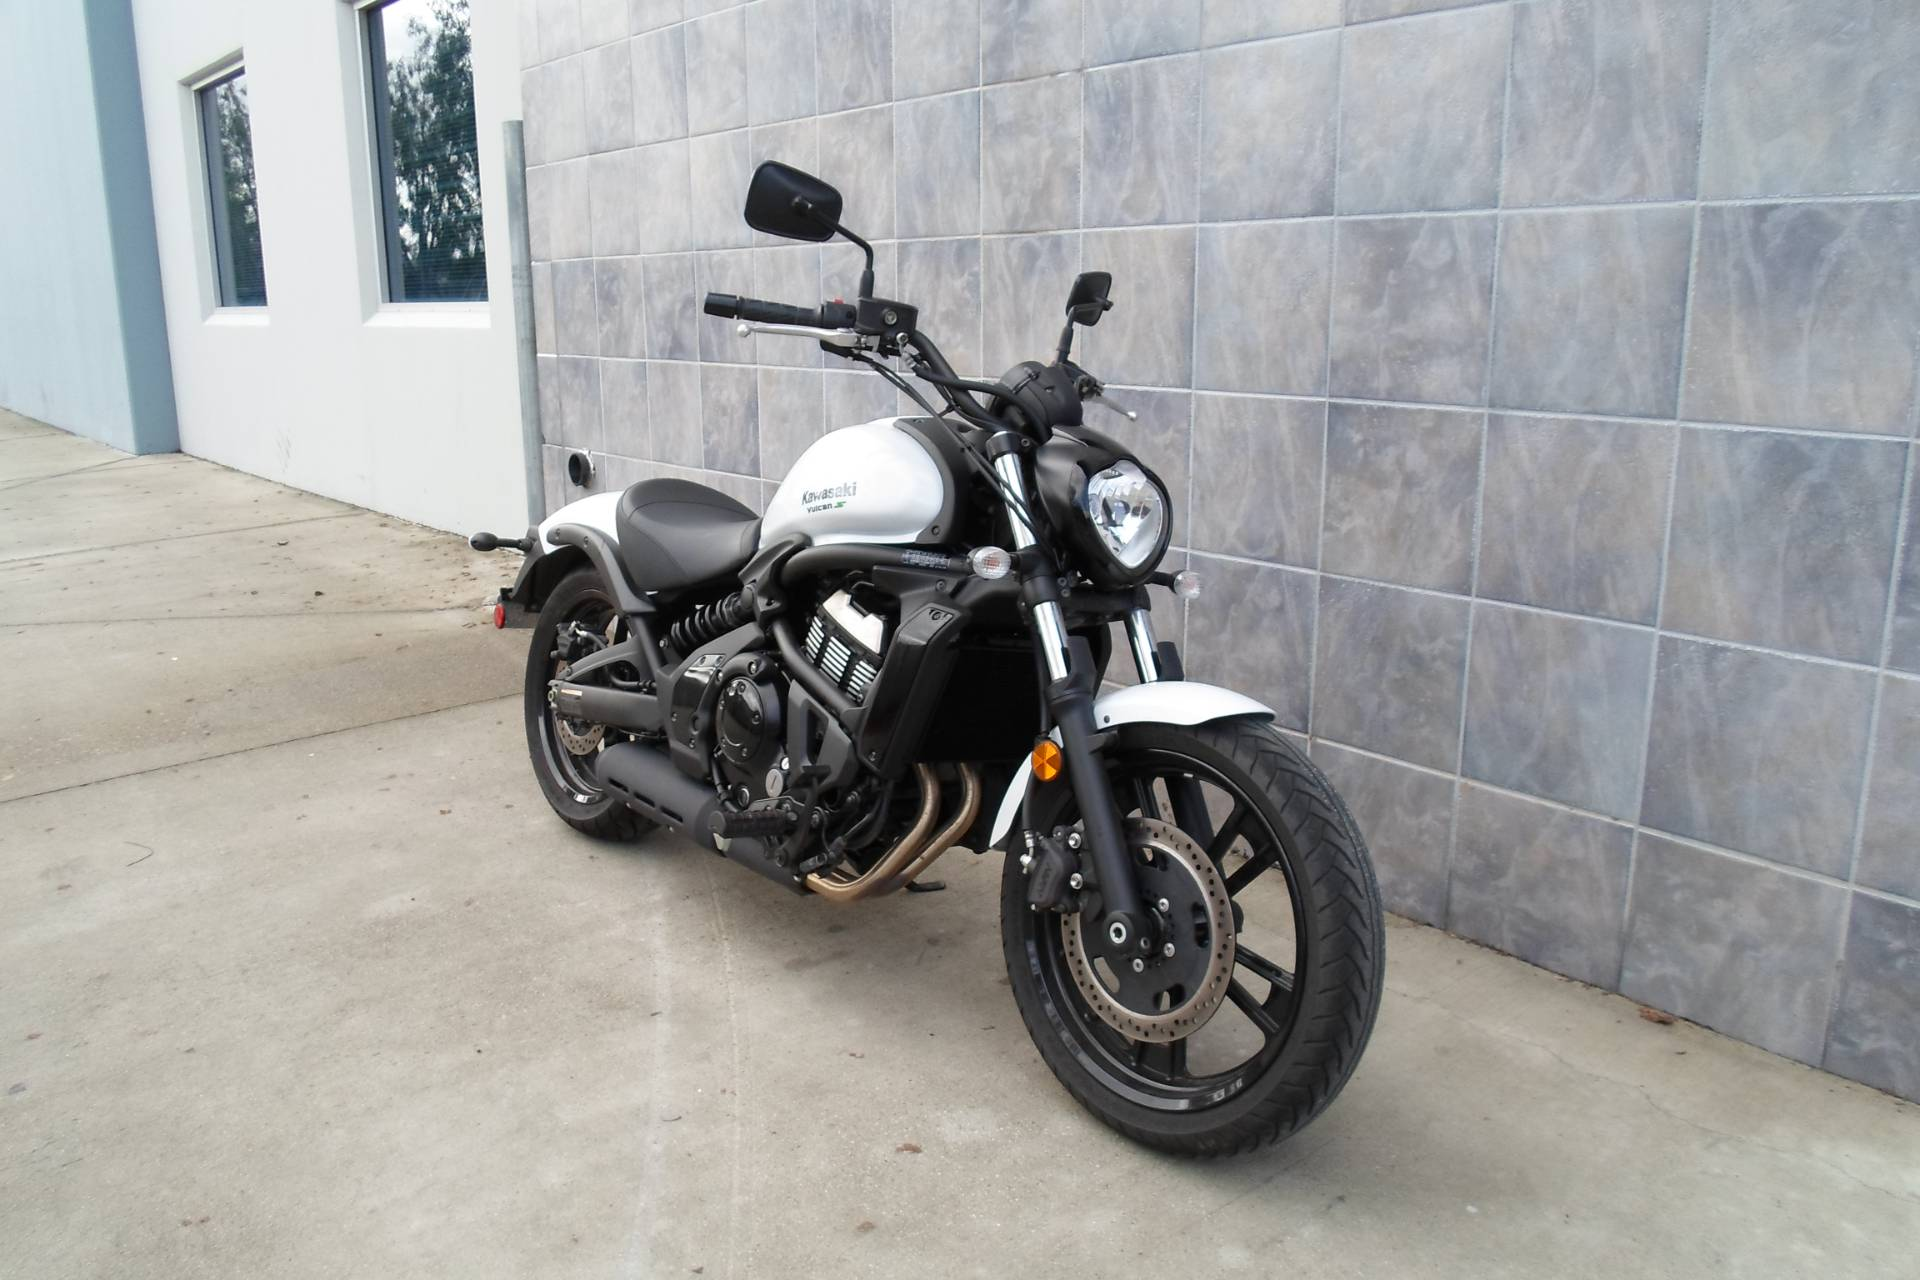 2018 Kawasaki Vulcan S in San Marcos, California - Photo 5